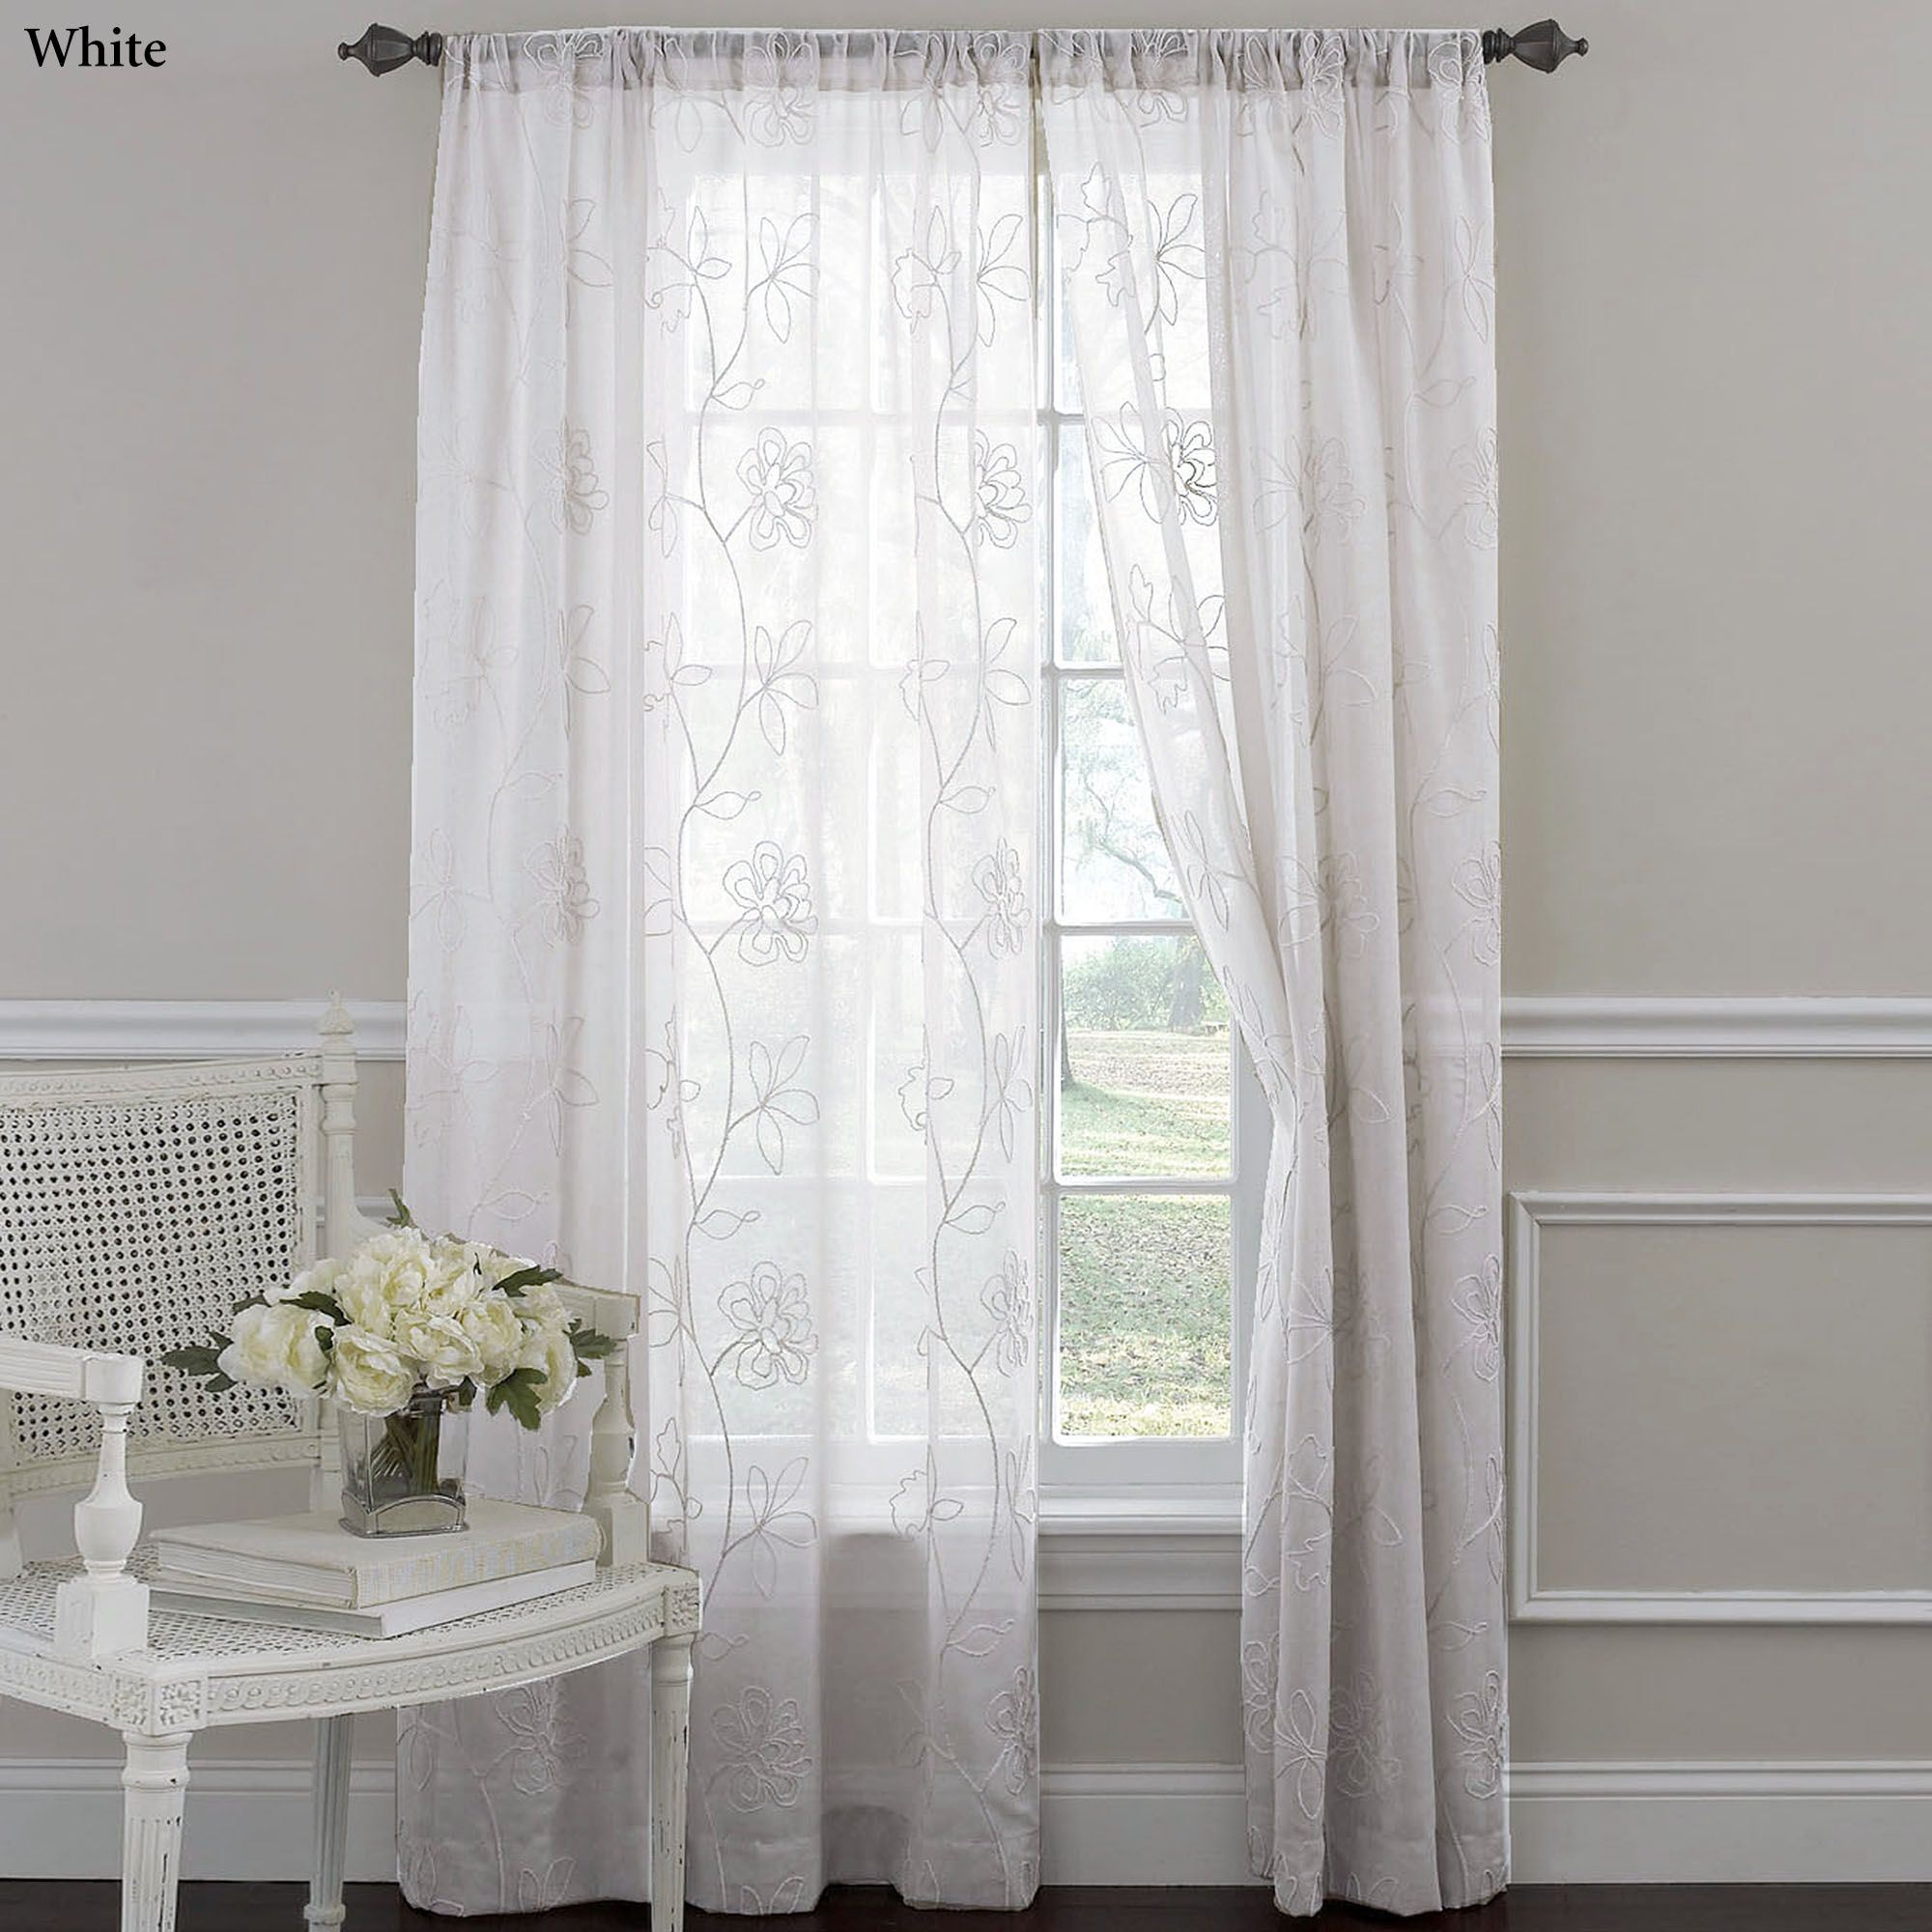 laura ashley frosting embroidered sheer curtain panels. Black Bedroom Furniture Sets. Home Design Ideas